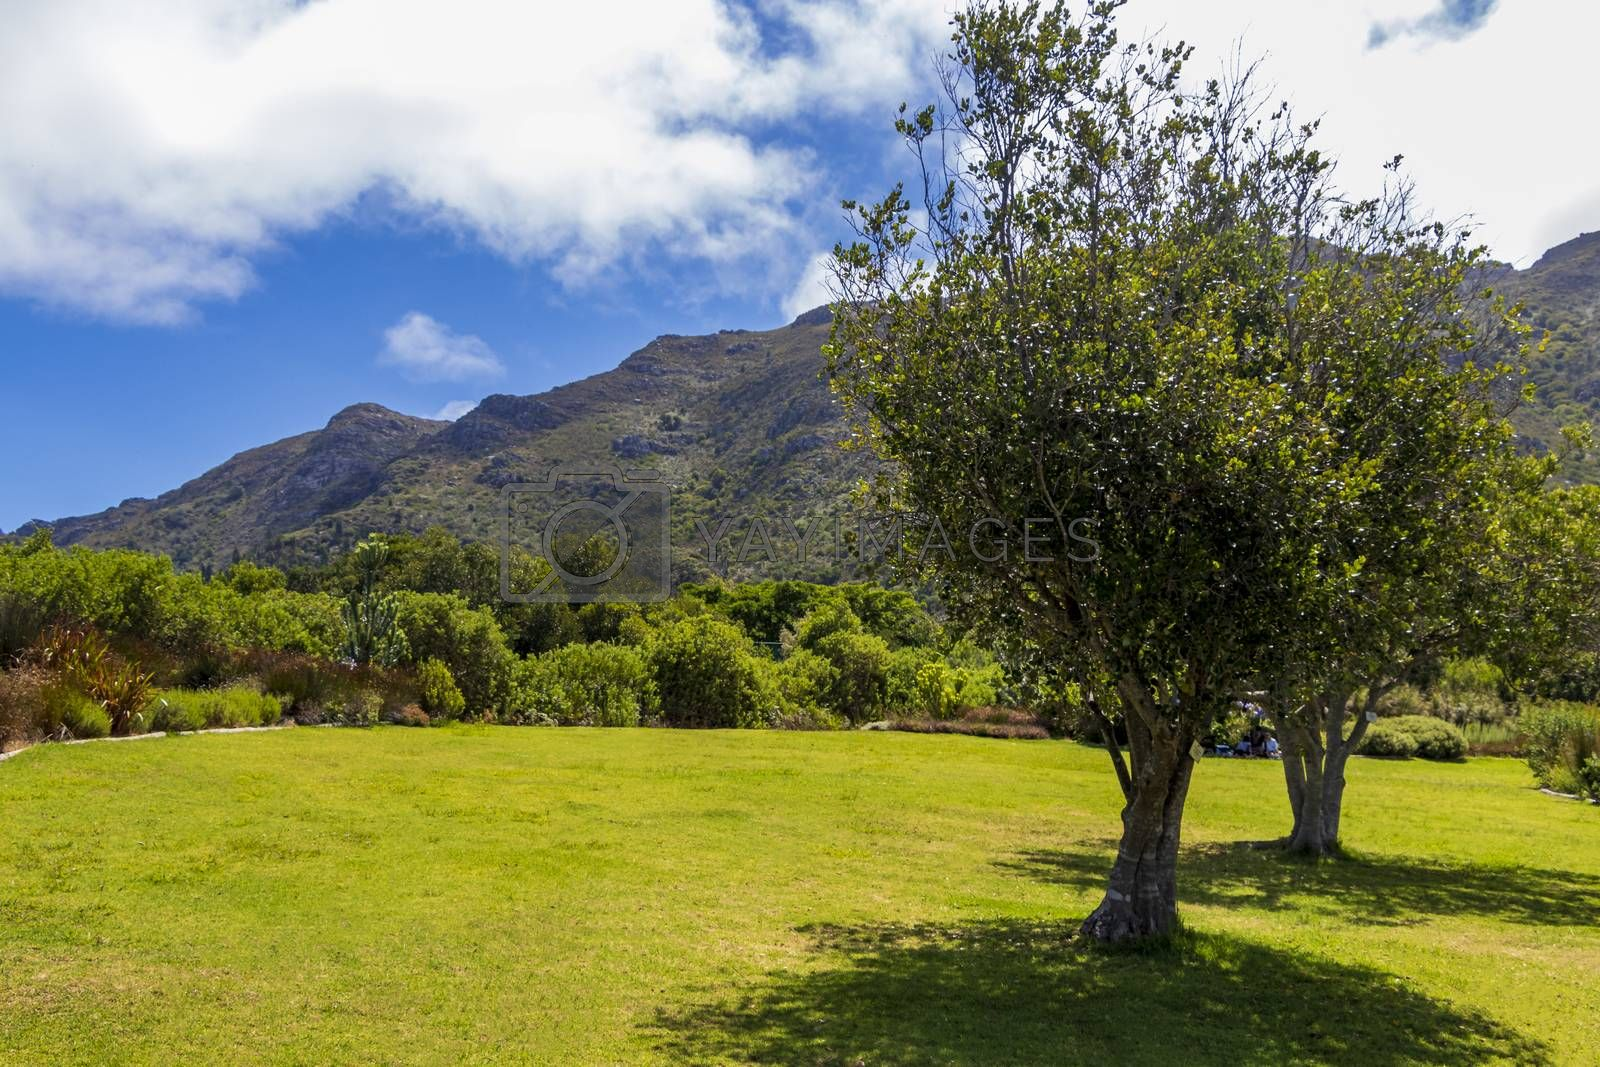 Landscape and Mountains in Kirstenbosch National Botanical Garden panorama, Cape Town, South Africa.